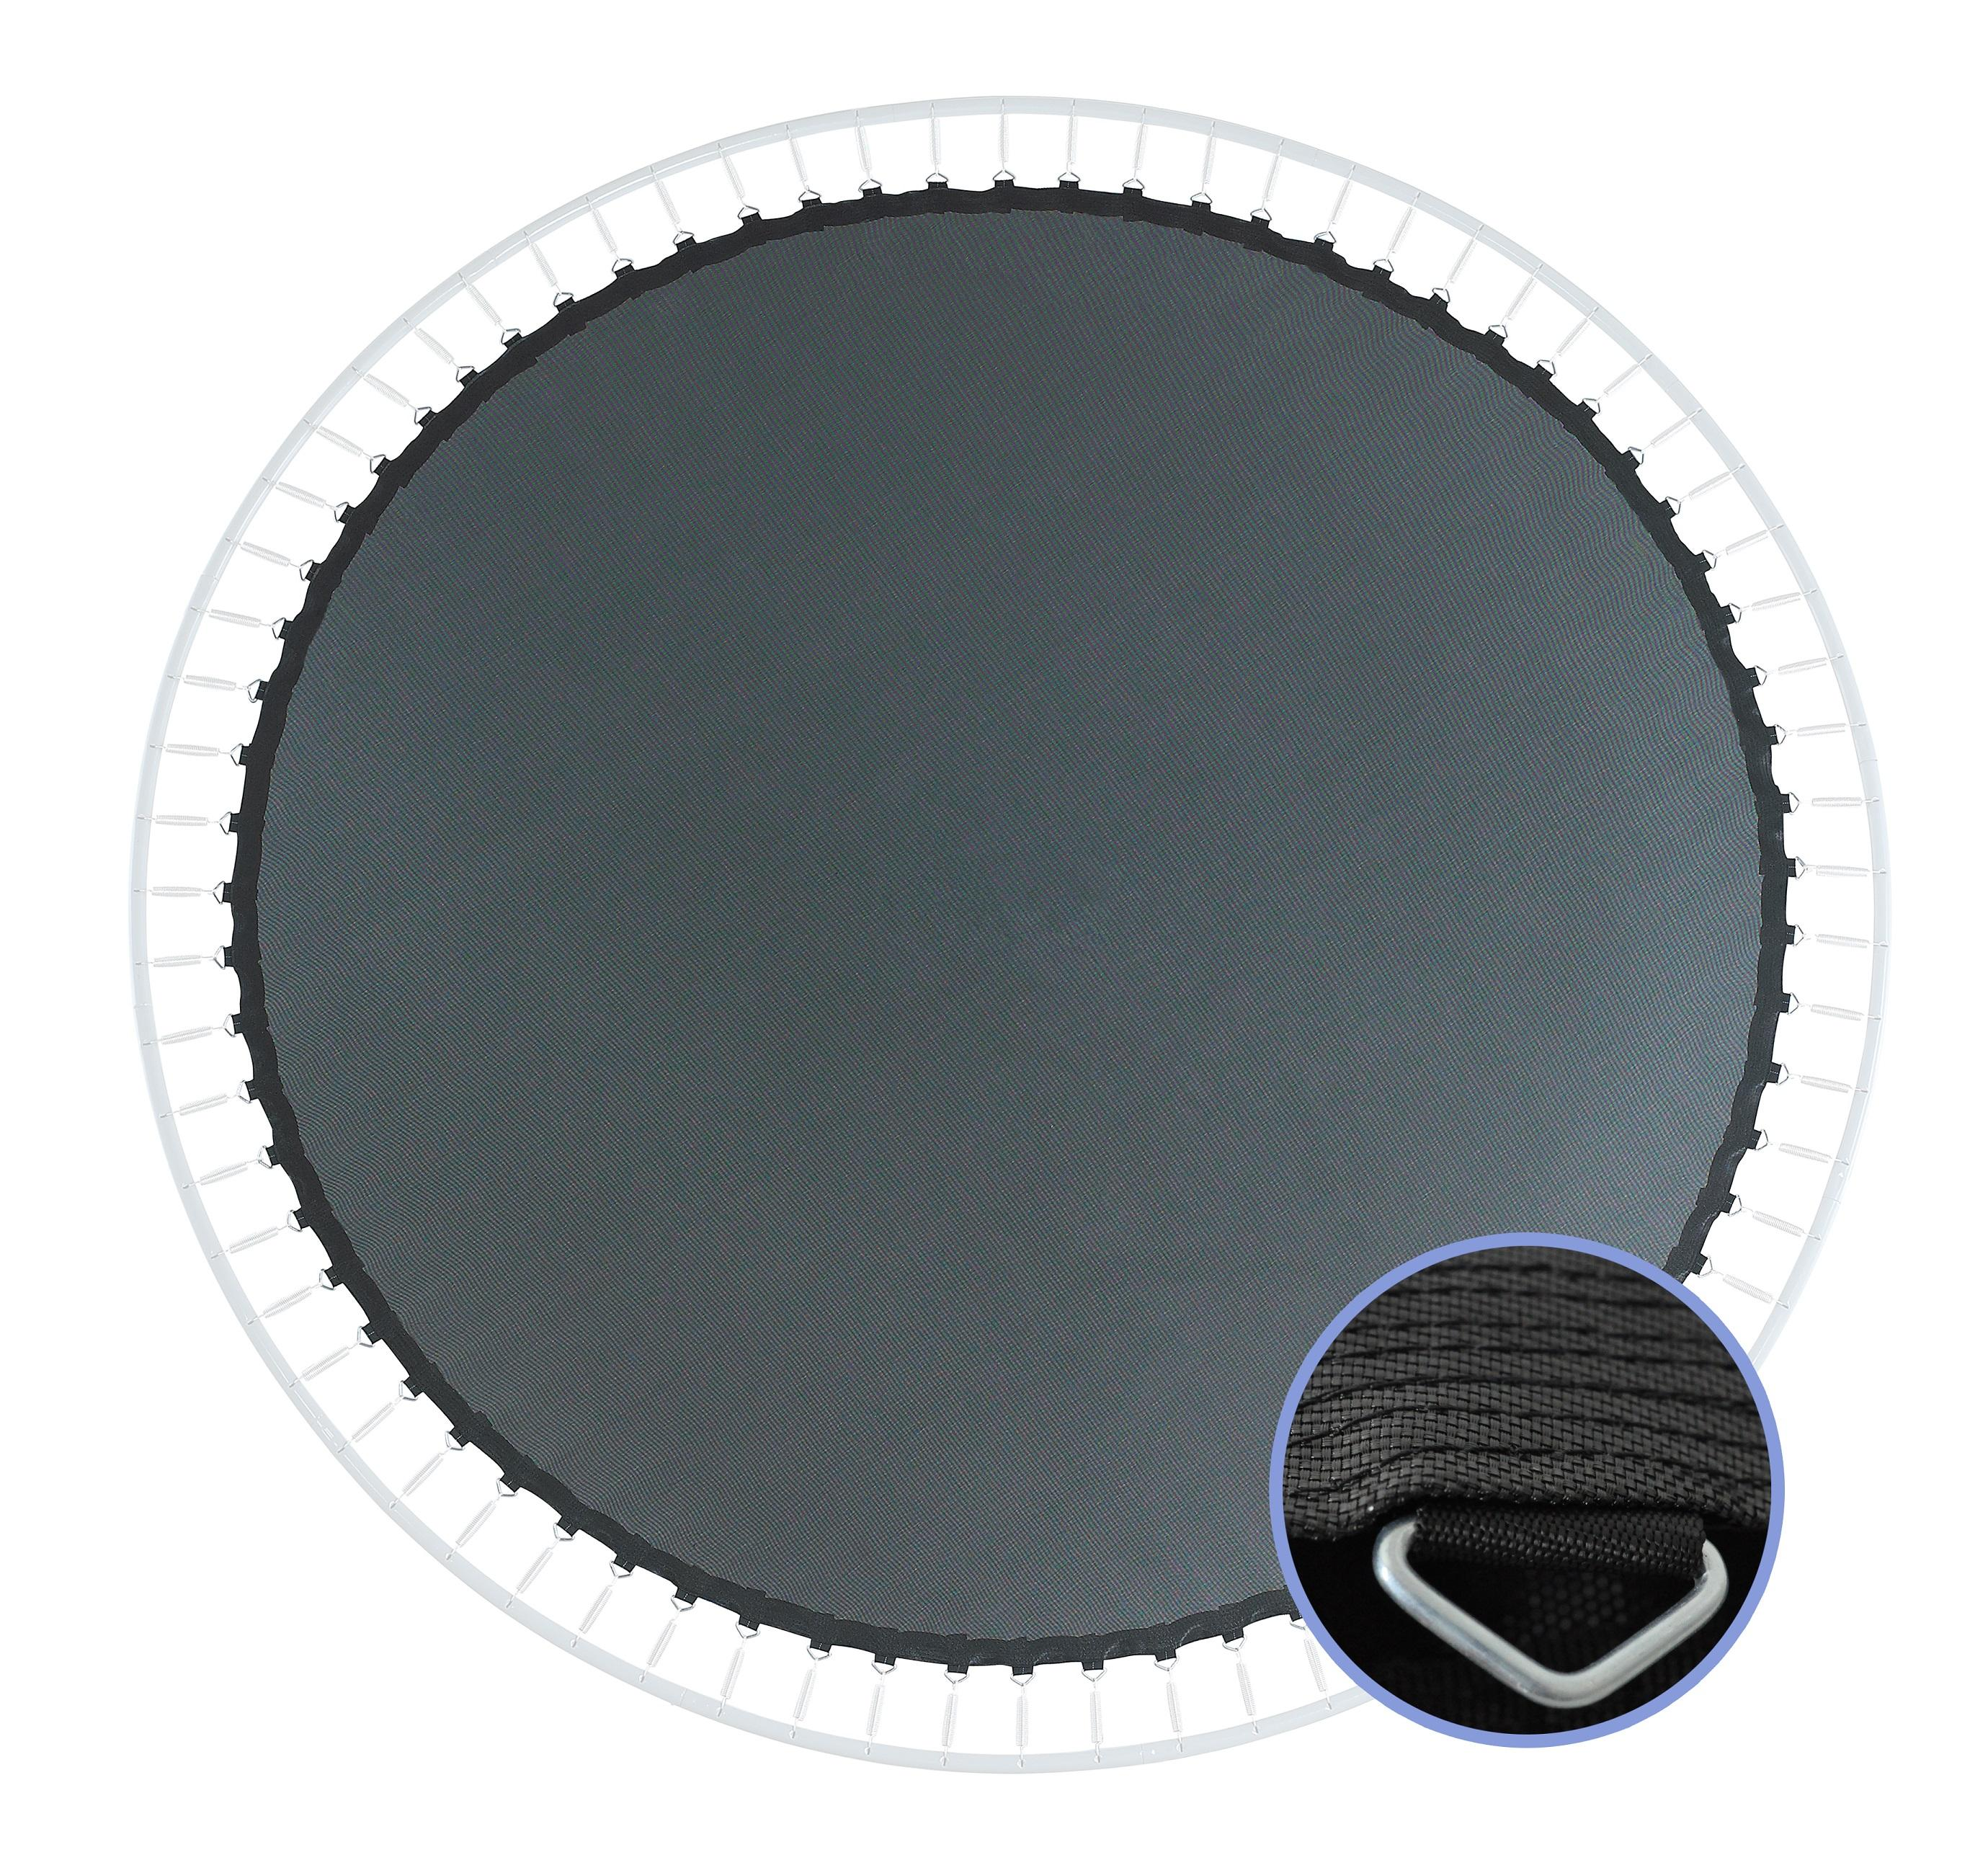 Amazon.com : Upper Bounce Trampoline Jumping Mat fits for Round Frame